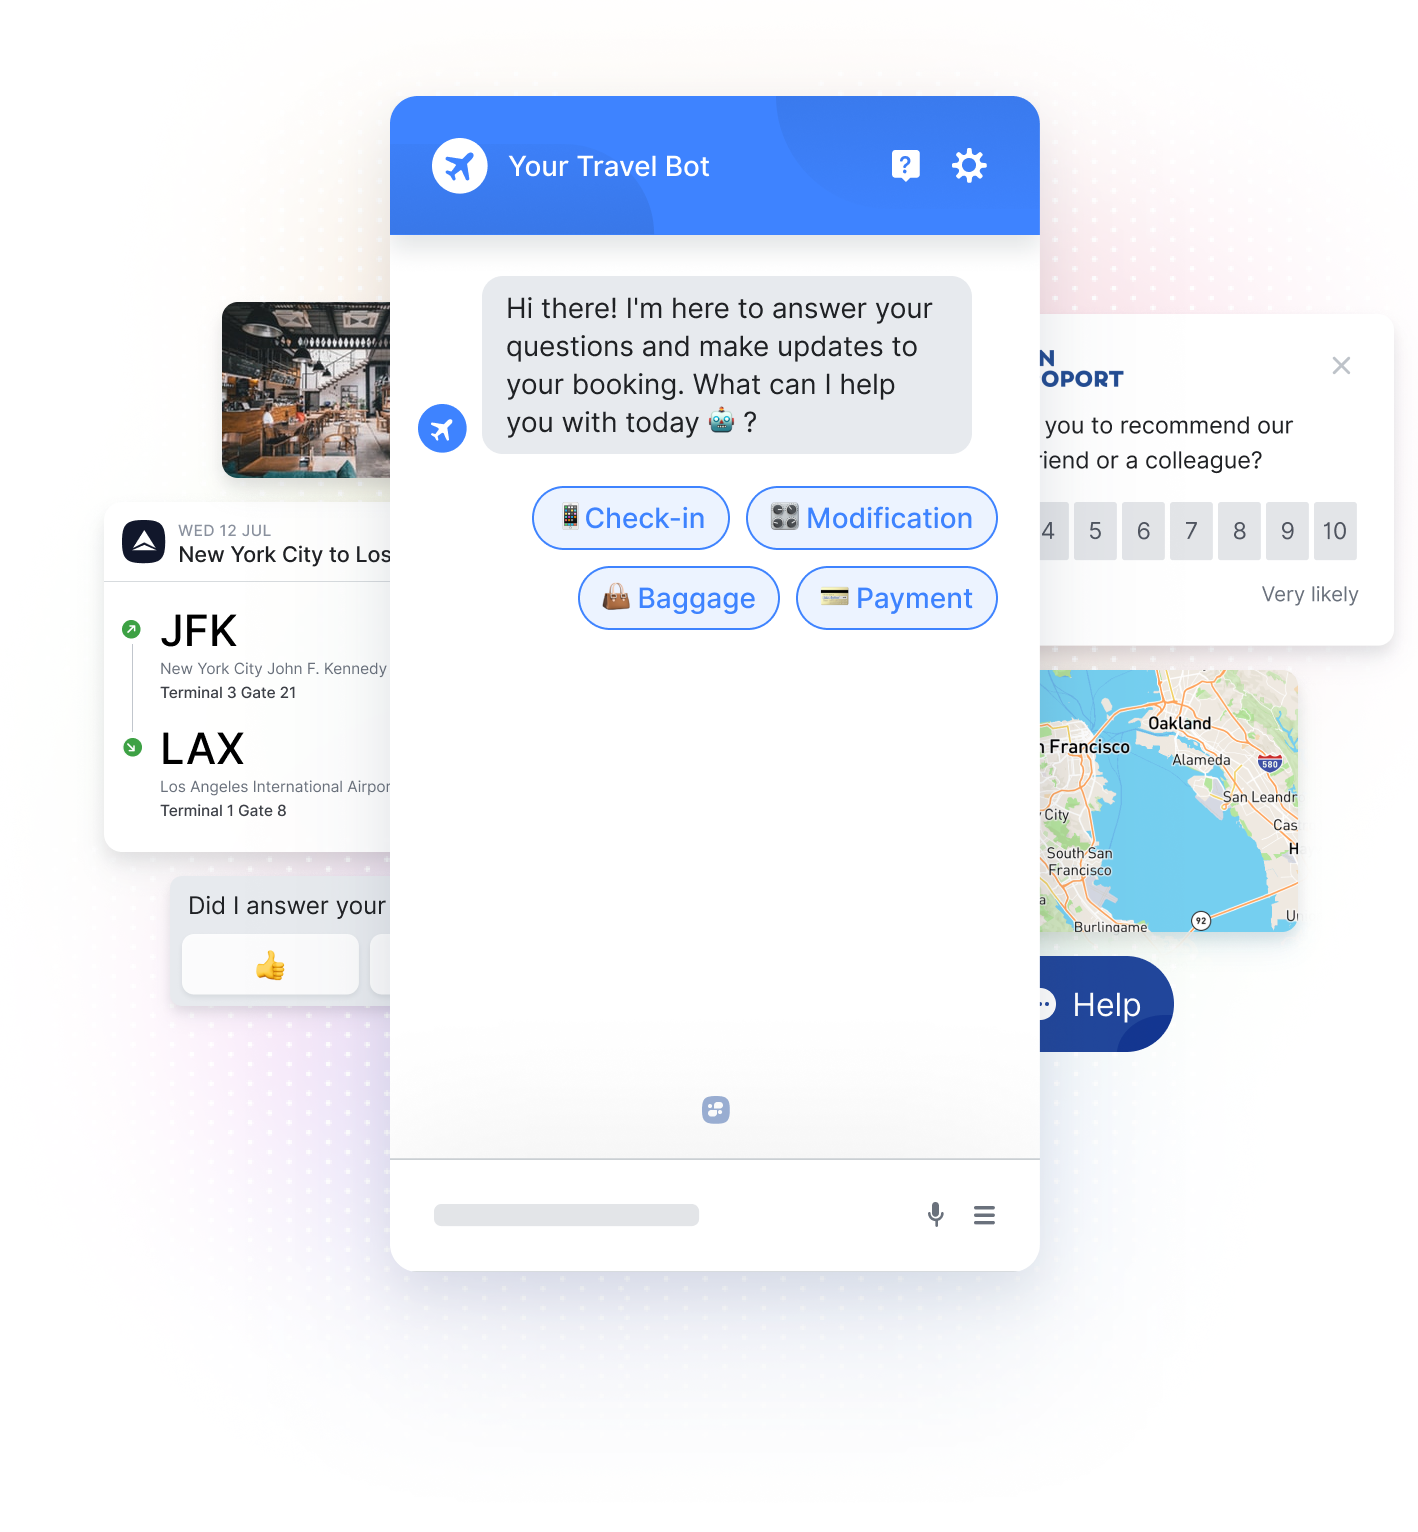 Airline Chatbot, Flight Itinerary, Map. Feedback Score, and Hotel Lobby